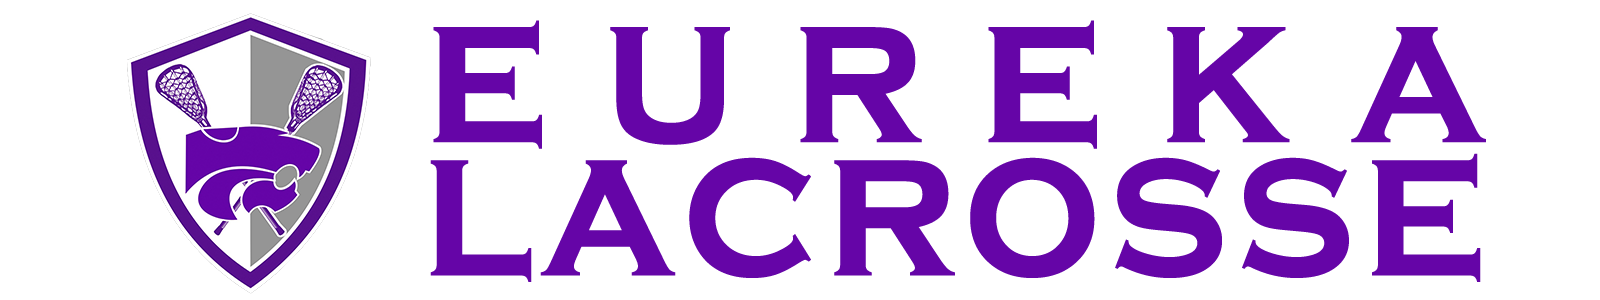 Website banner   transparent purple letters with shield